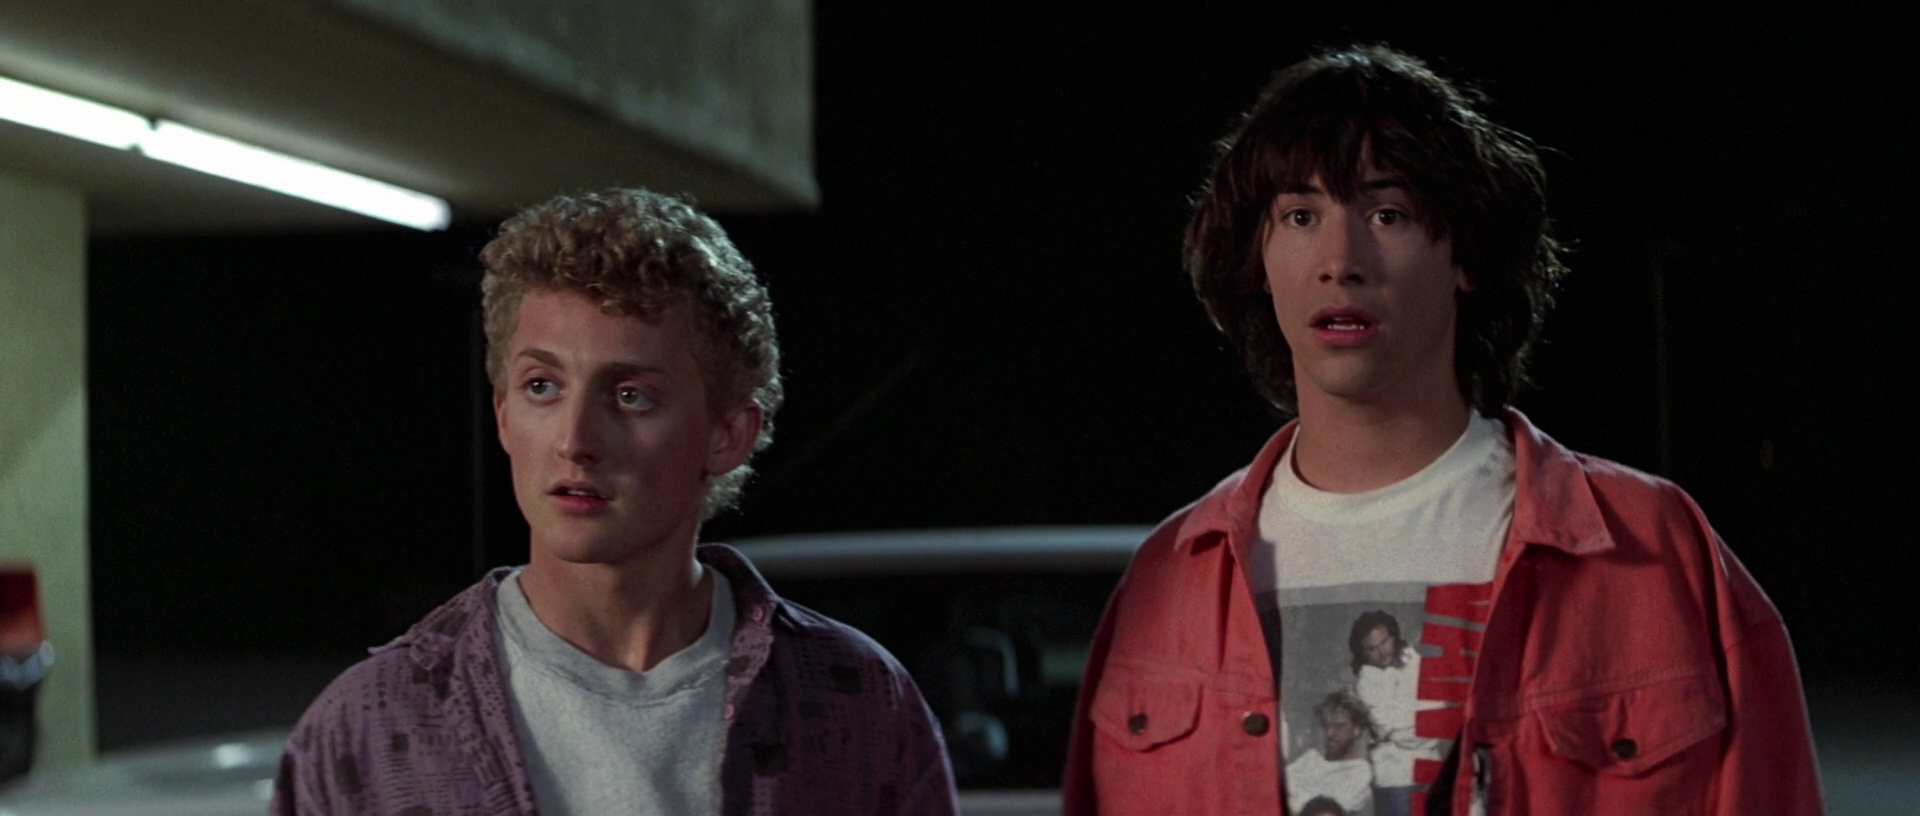 Screen Captures - Bill-and-Teds-Excellent-Adventure-0242 - Keanu Reeves  Online | Keanu Reeves Photos